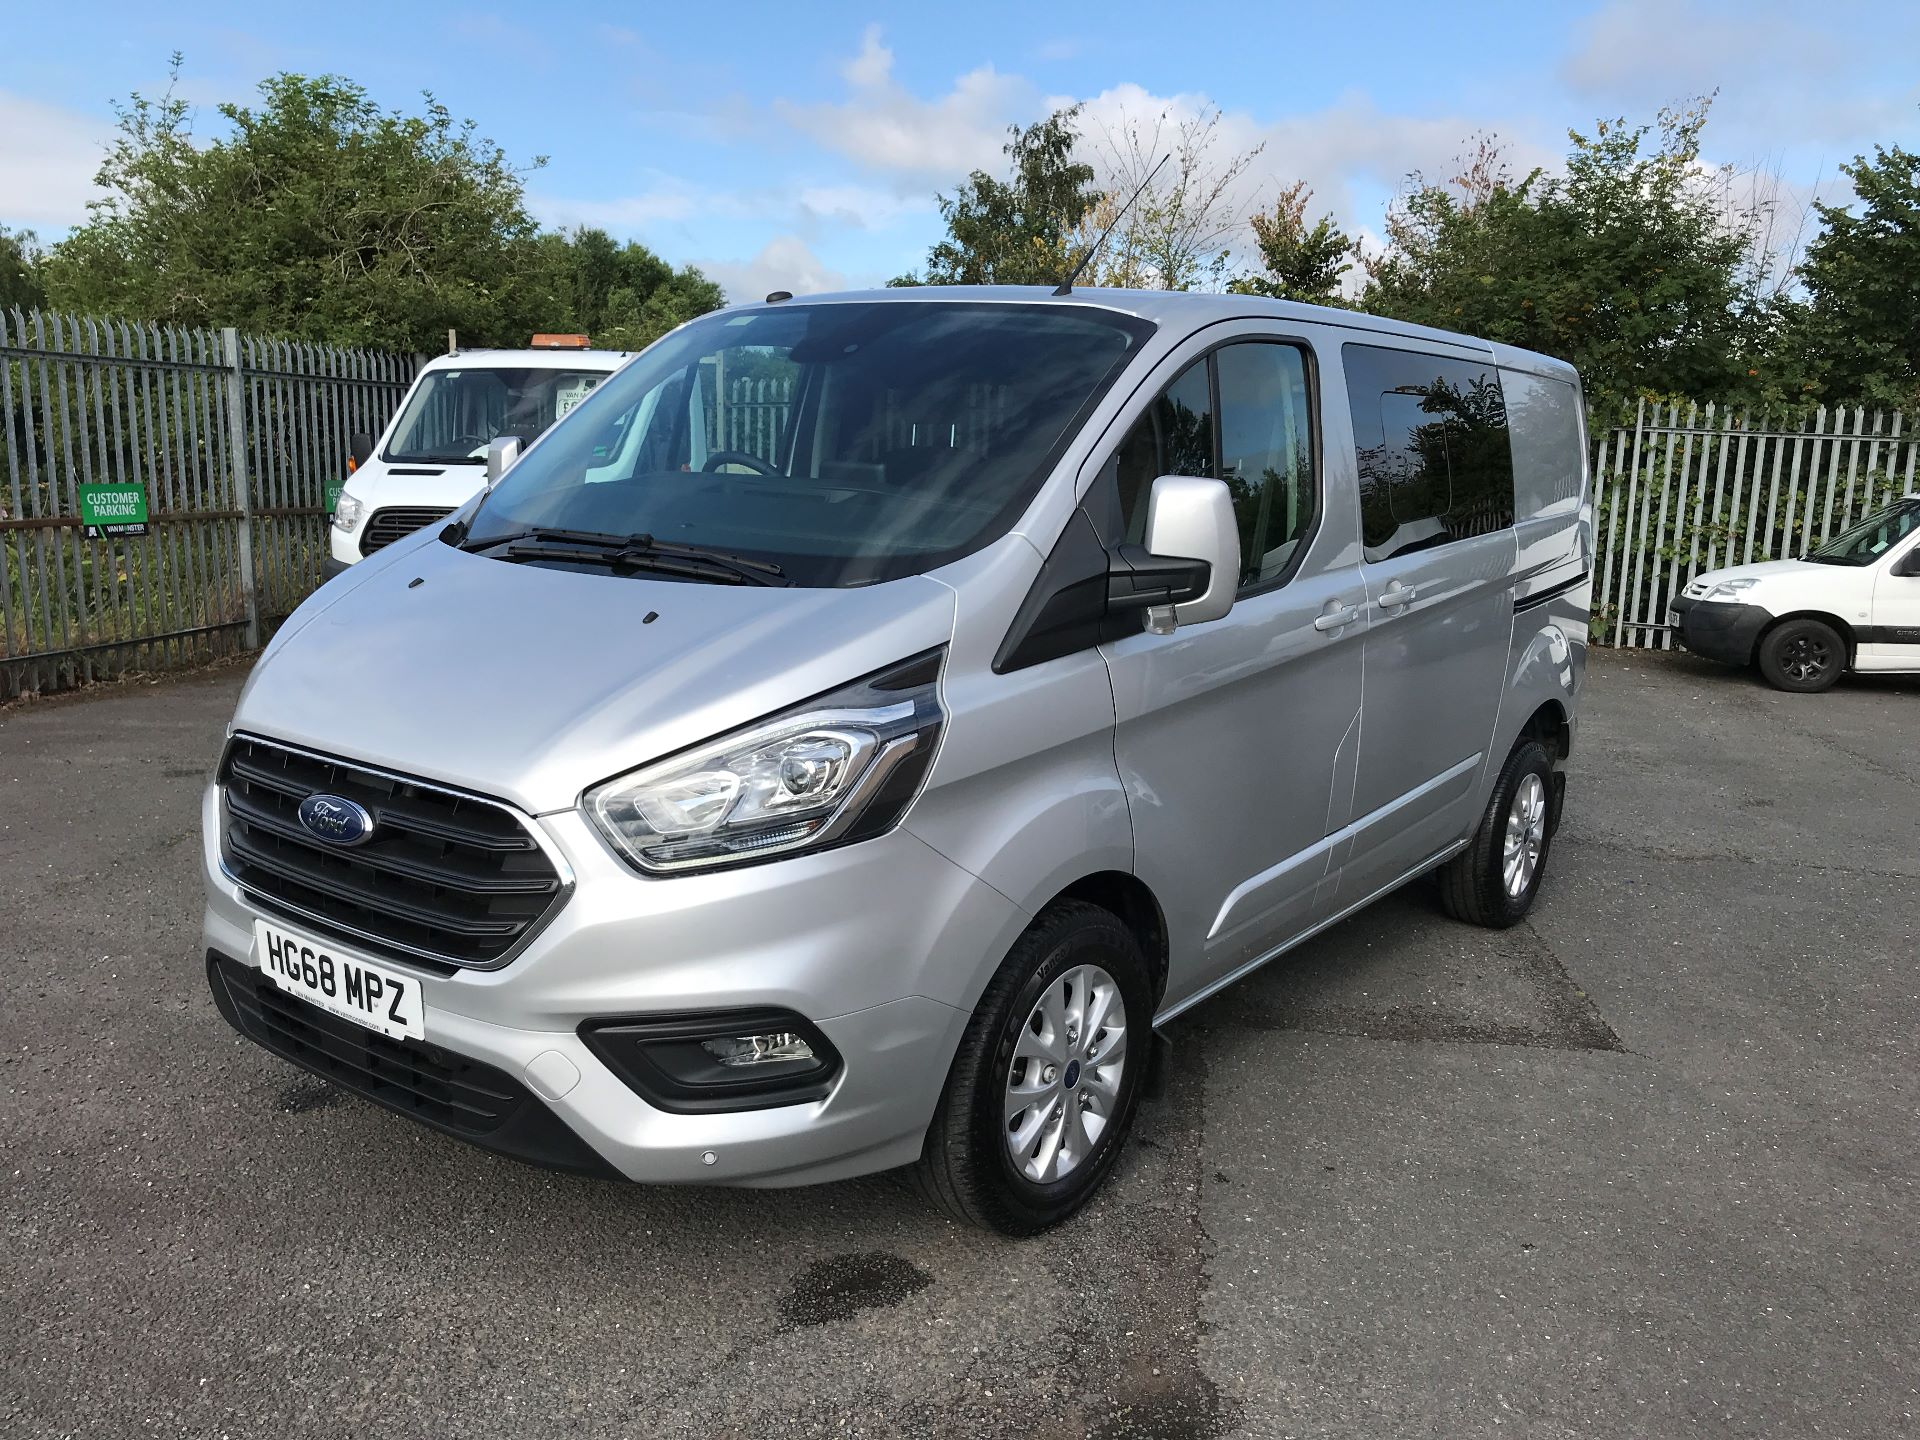 2018 Ford Transit Custom 320 L1 2.0TDCI 130PS LOW ROOF DOUBLE CAB LIMITED EURO 6 (HG68MPZ) Image 12